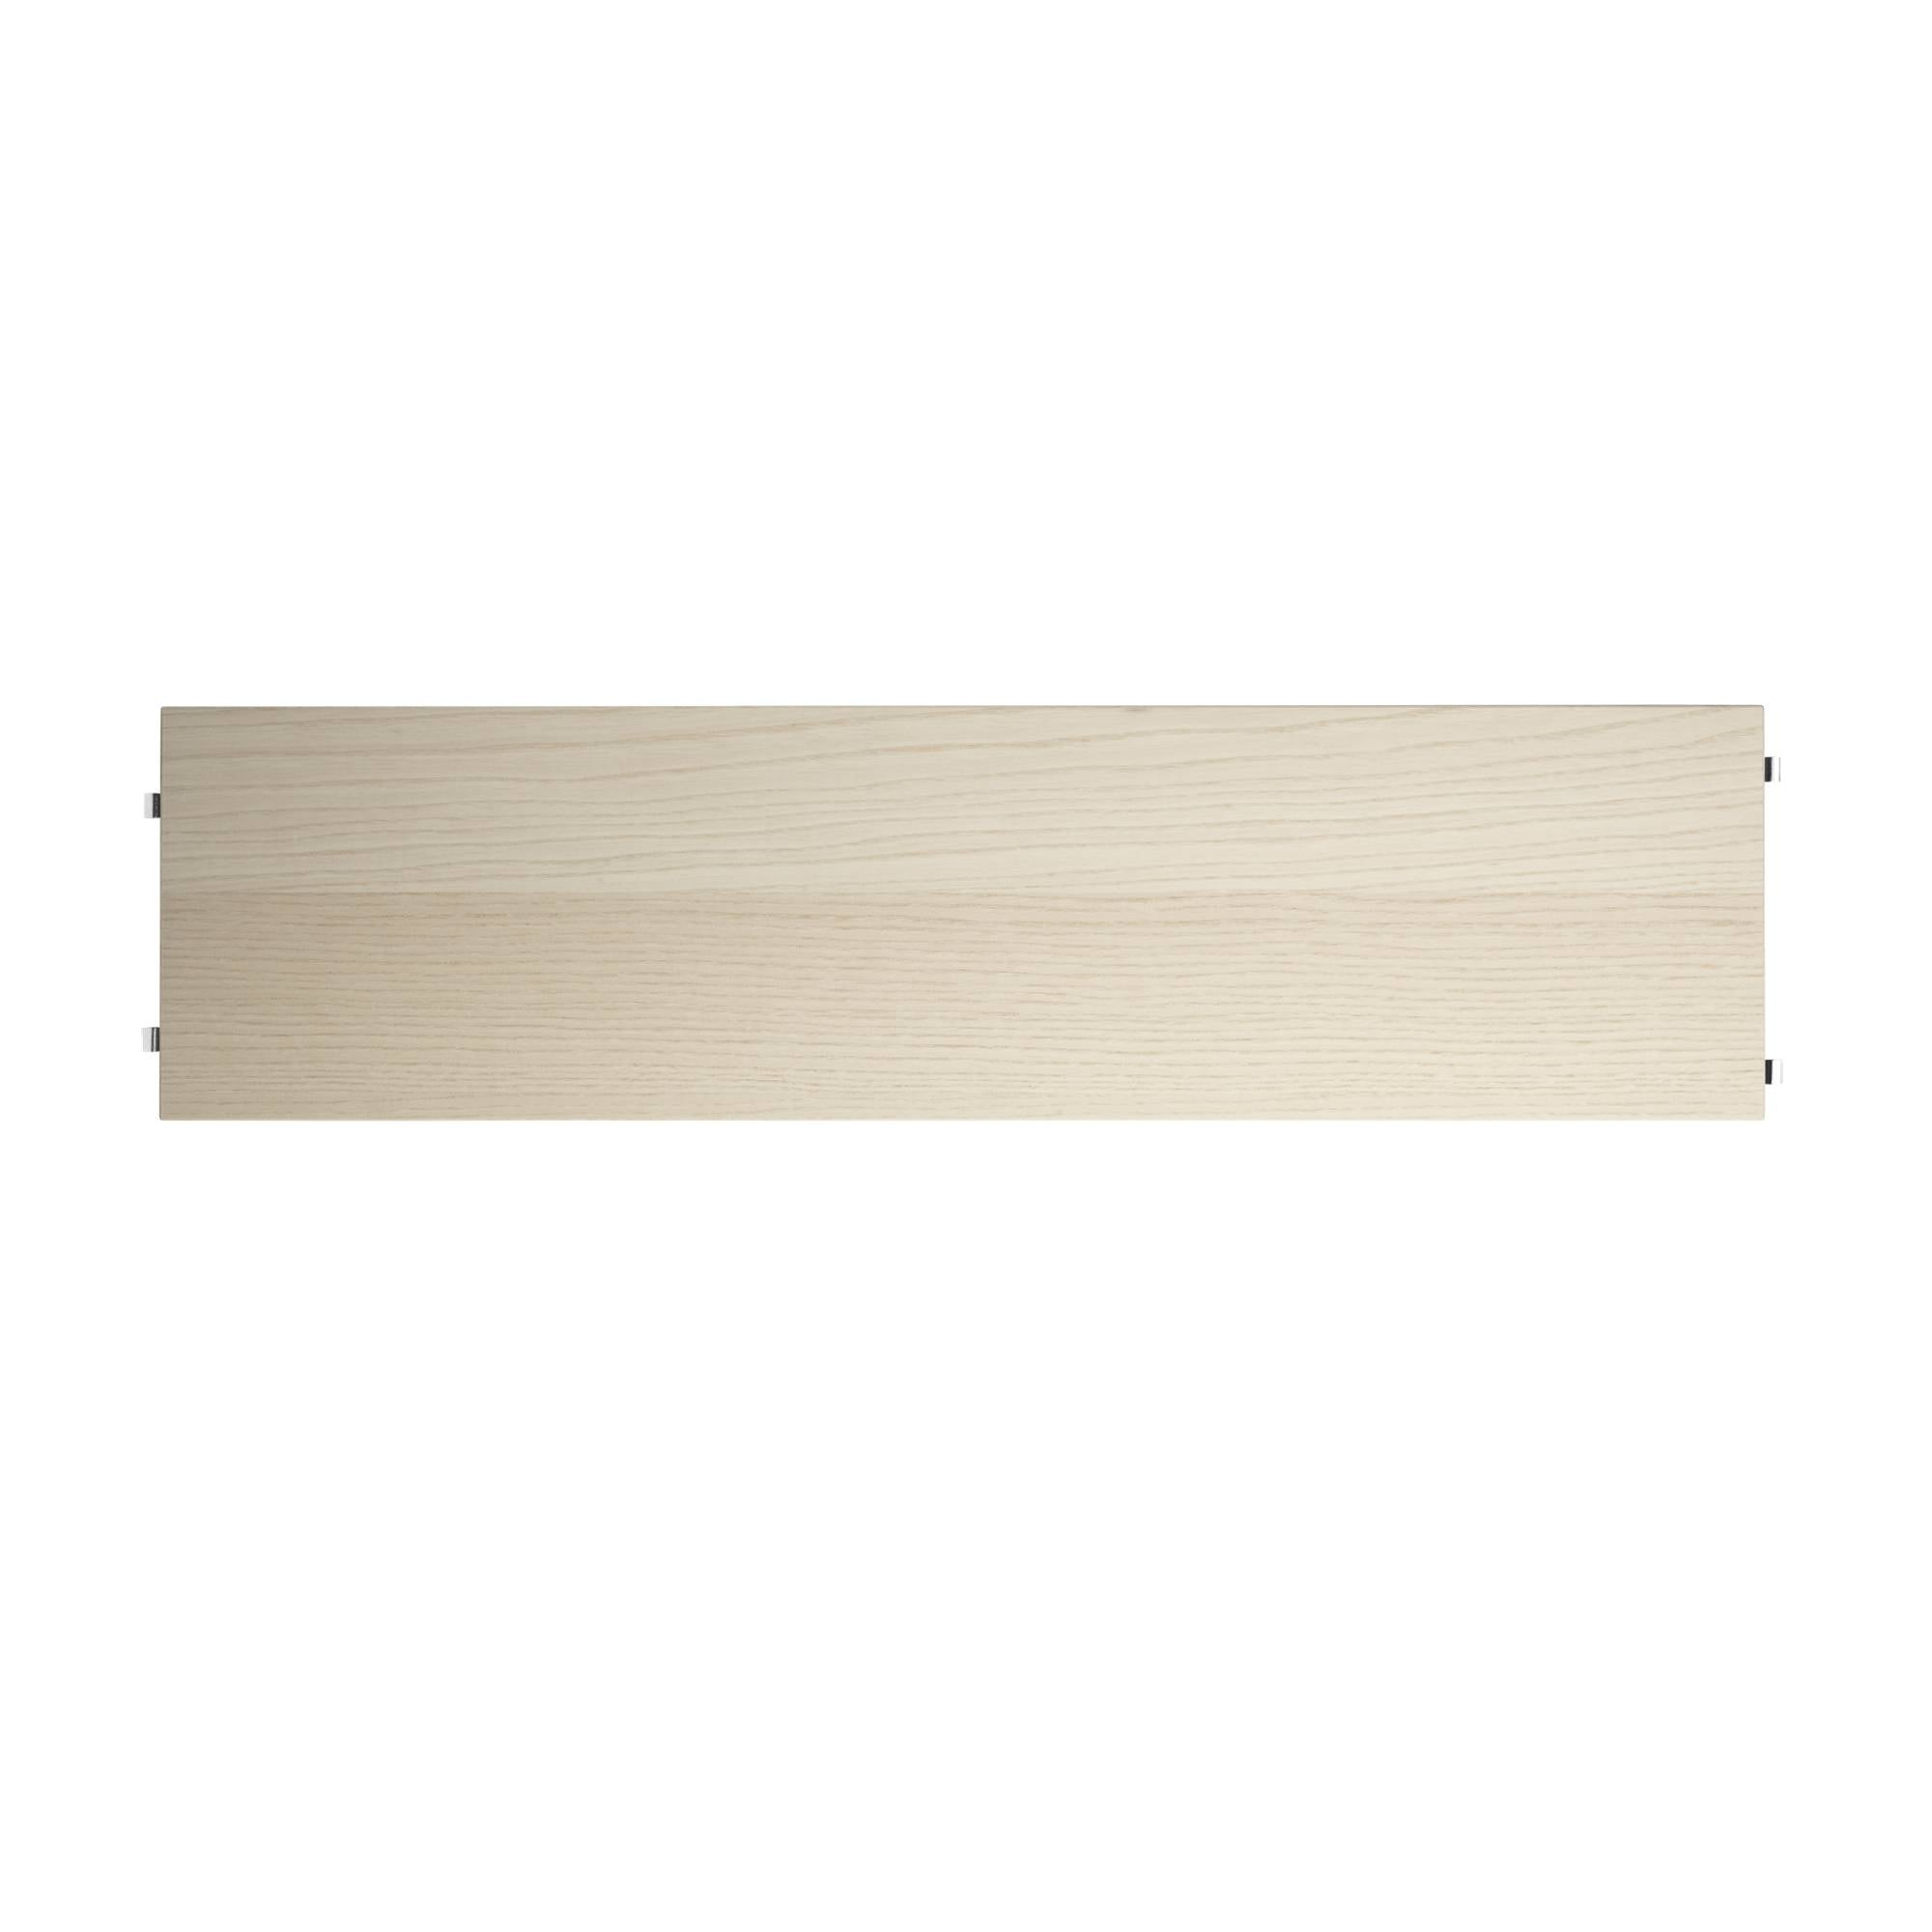 String System: Shelves (3-Pack) + 78 x 20 cm + Ash